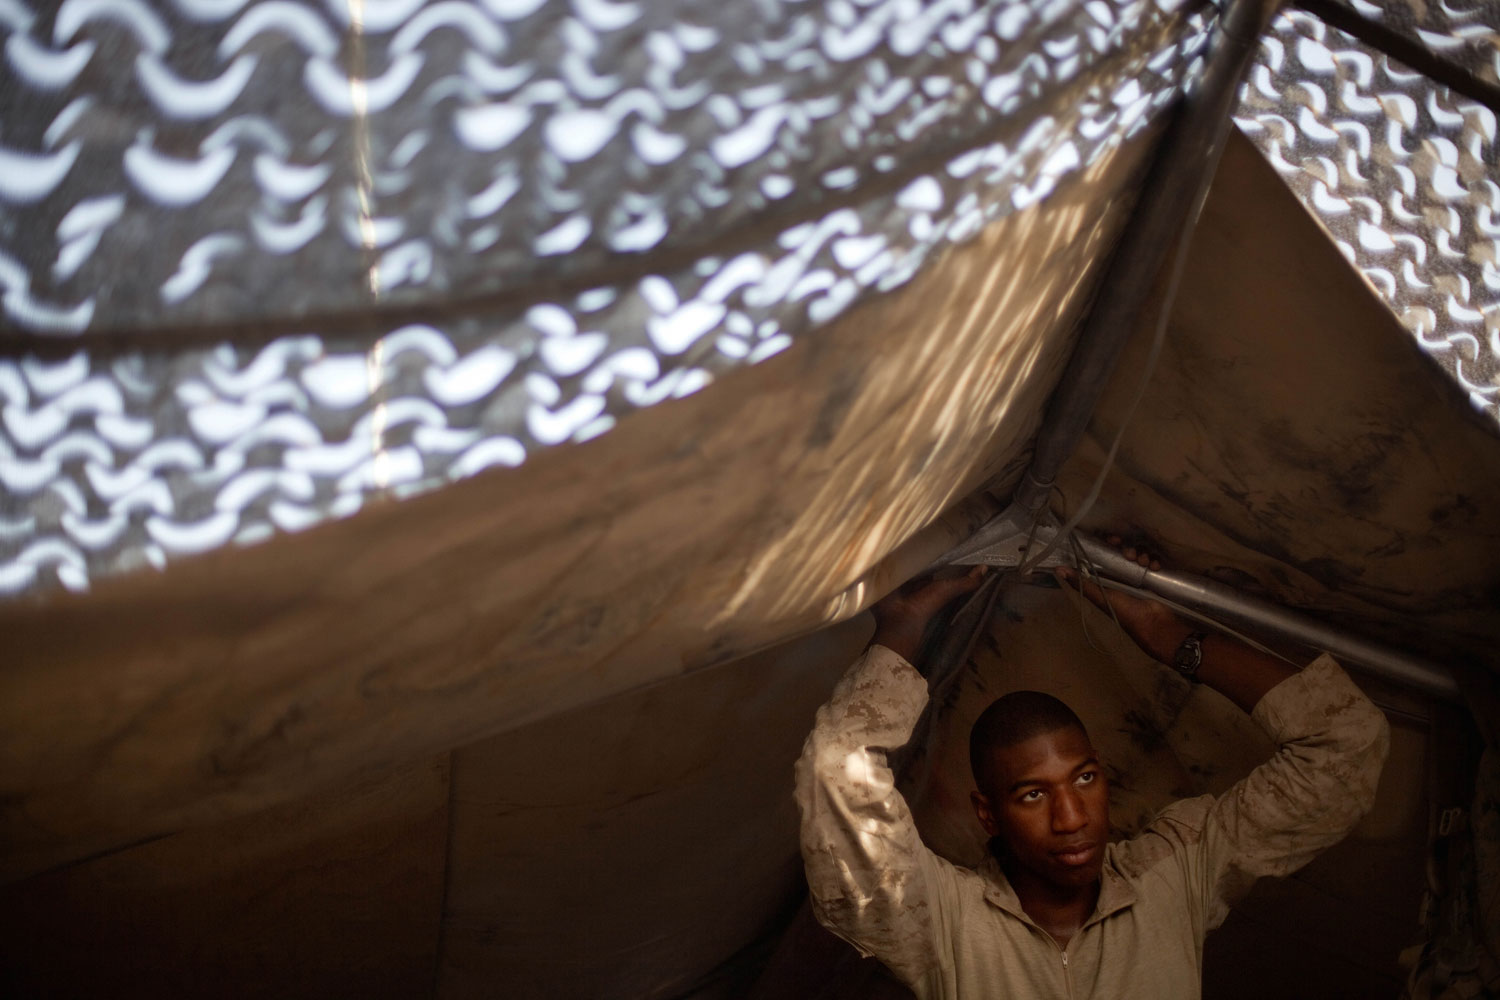 July 30, 2011. U.S. Marine Sgt. Myron Ellis, 26, of Sacramento, Calif., with the 2nd Battalion 12th Marines based in Kaneohe Bay, Hawaii, looks out from under a tent at a mountain top outpost called The Shrine Saturday, in Kajaki, Helmand province, Afghanistan.